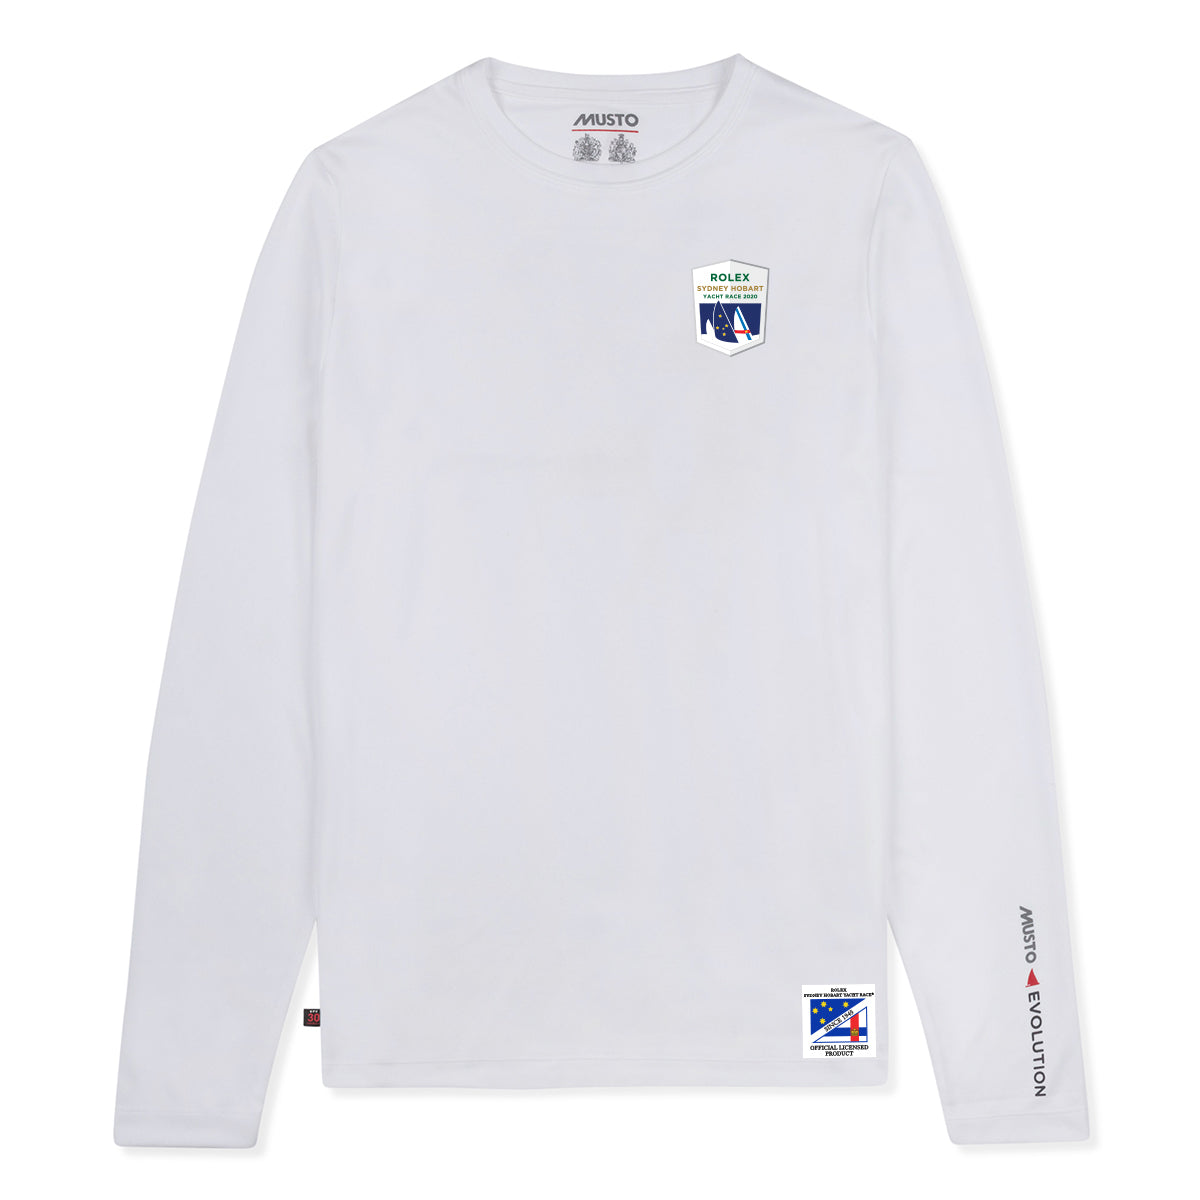 RSHYR20 - Map Long Sleeve T-Shirt (Men's)